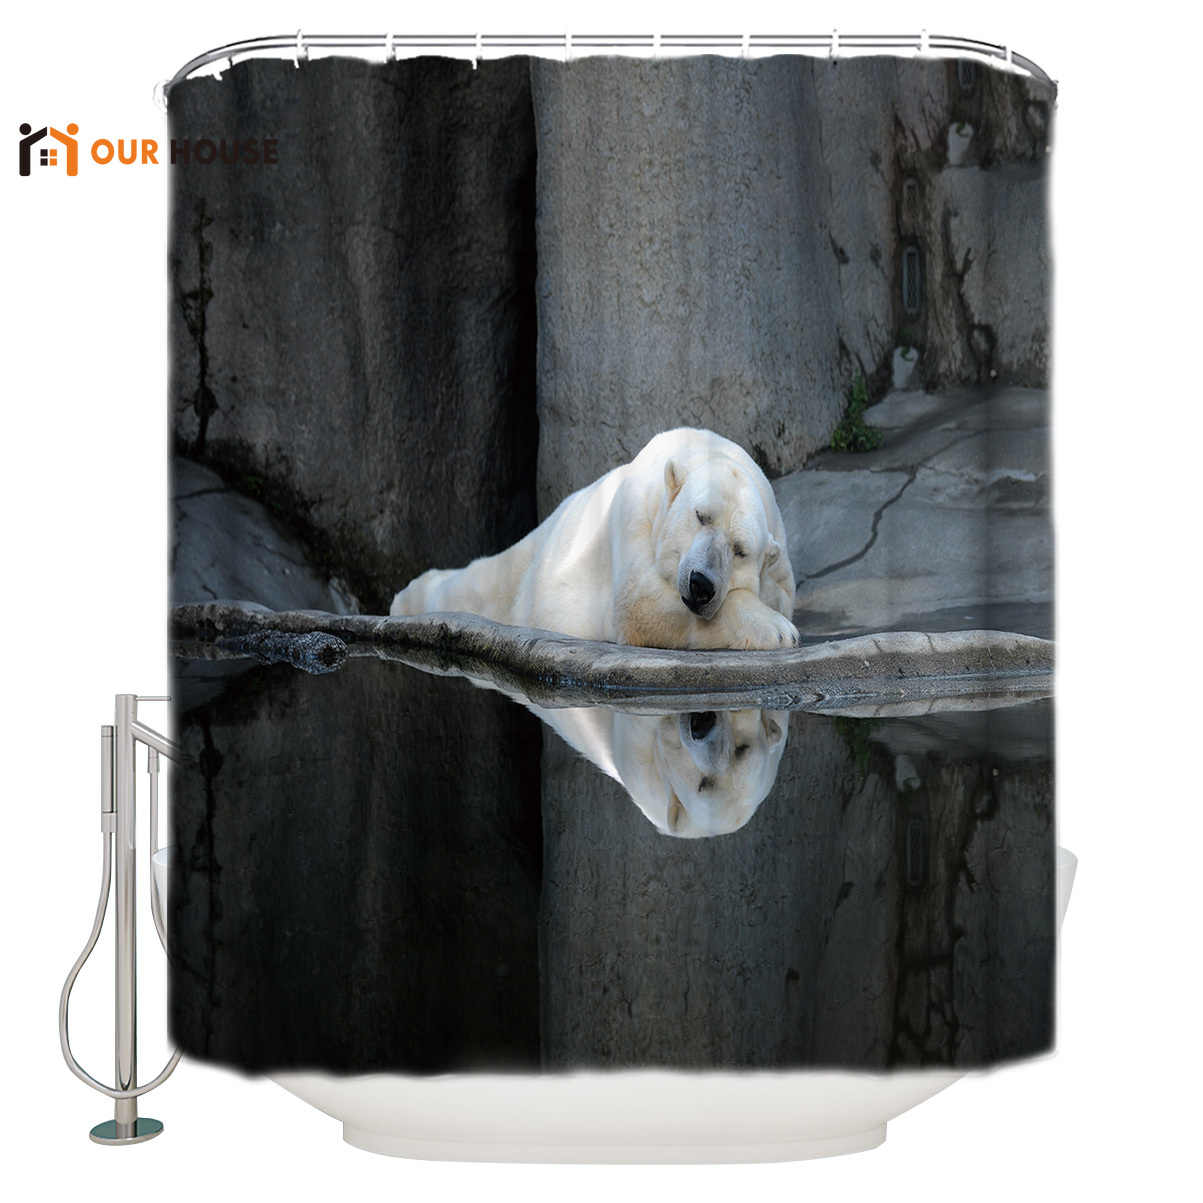 OURHouse Sleeping Polar Bear Shower Curtain Bathroom Bed Bath Bathroom  Liner Childrens Floral Rings Girls Kids Mens Cool Weig